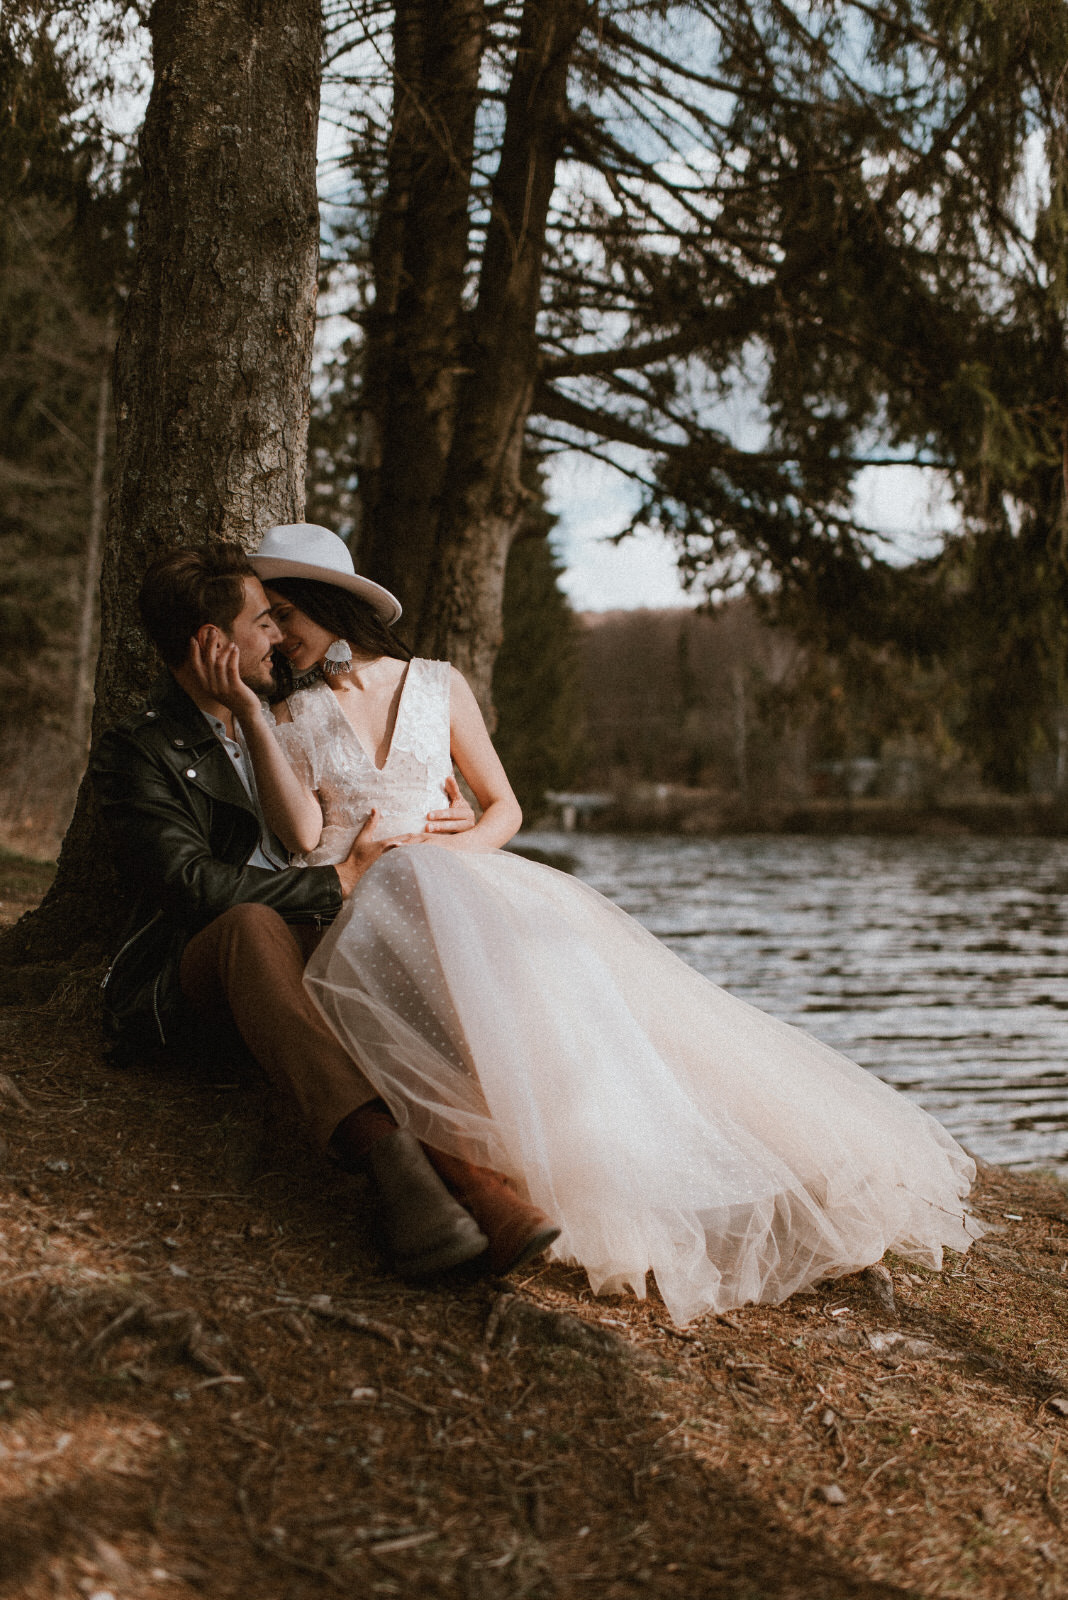 Our Love Is Raw Like the Forest by Sorin & Patricia